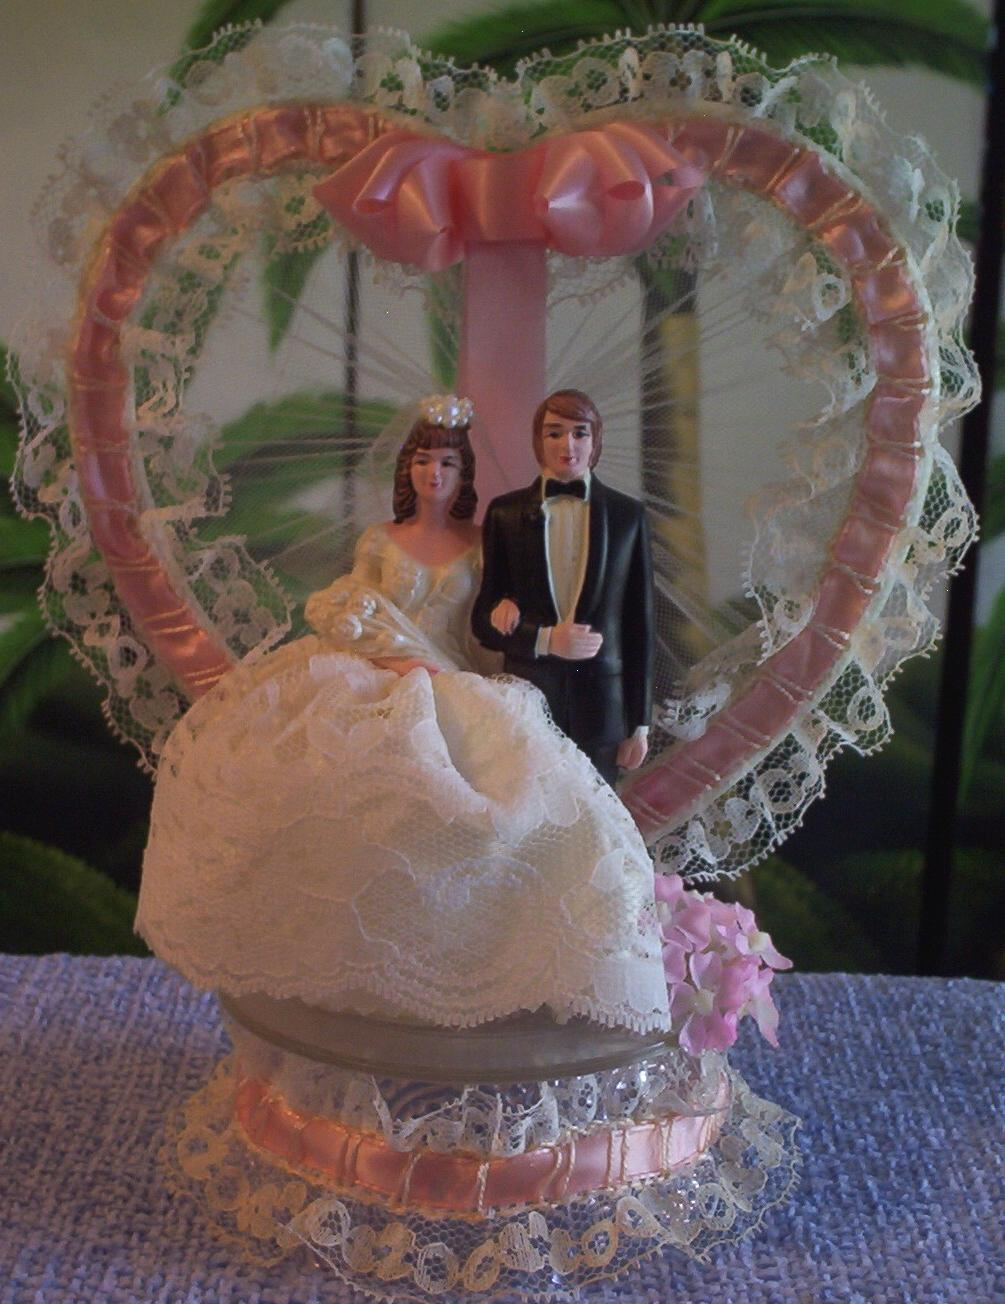 After finding not one, but TWO, vintage wedding cake toppers this week